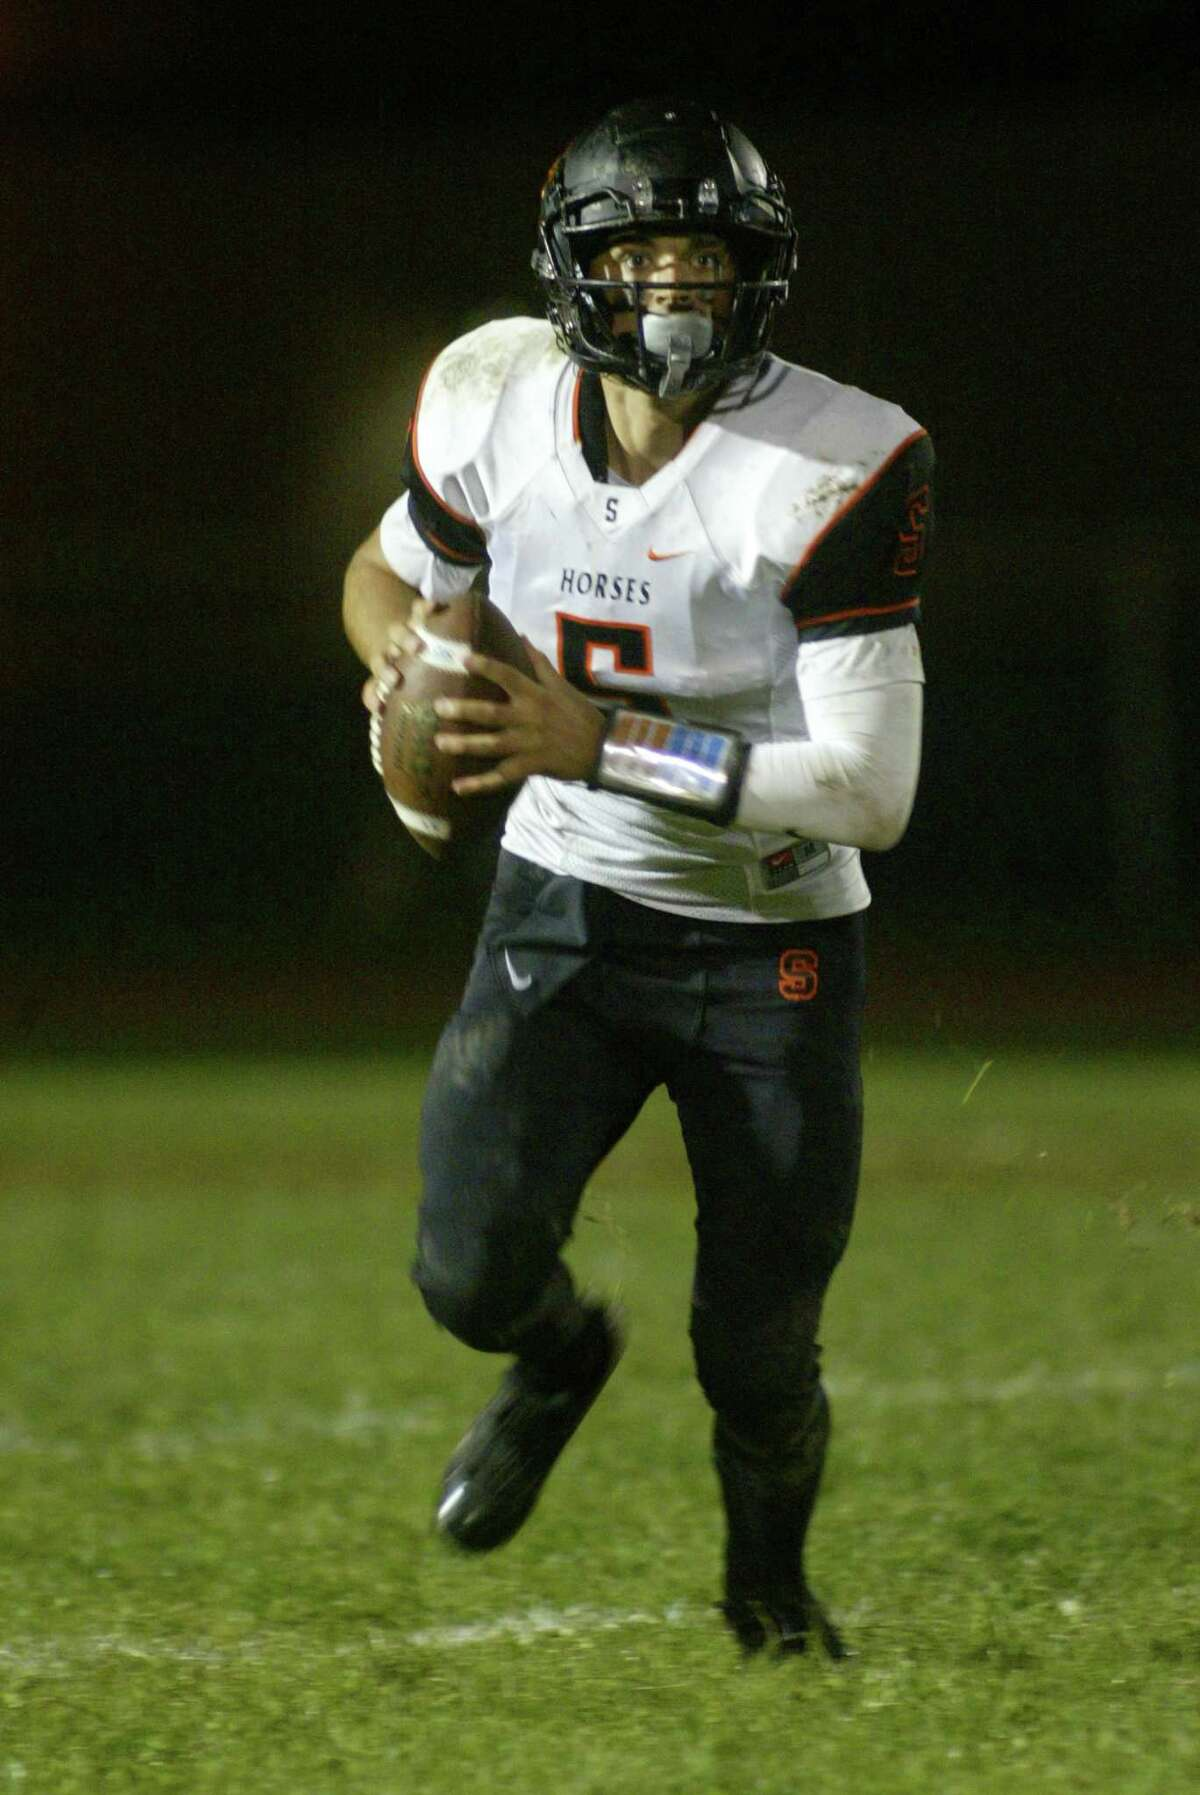 Schuylerville quarterback Owen Sherman has helped the Black Horses to the top spot in the Class B rankings.